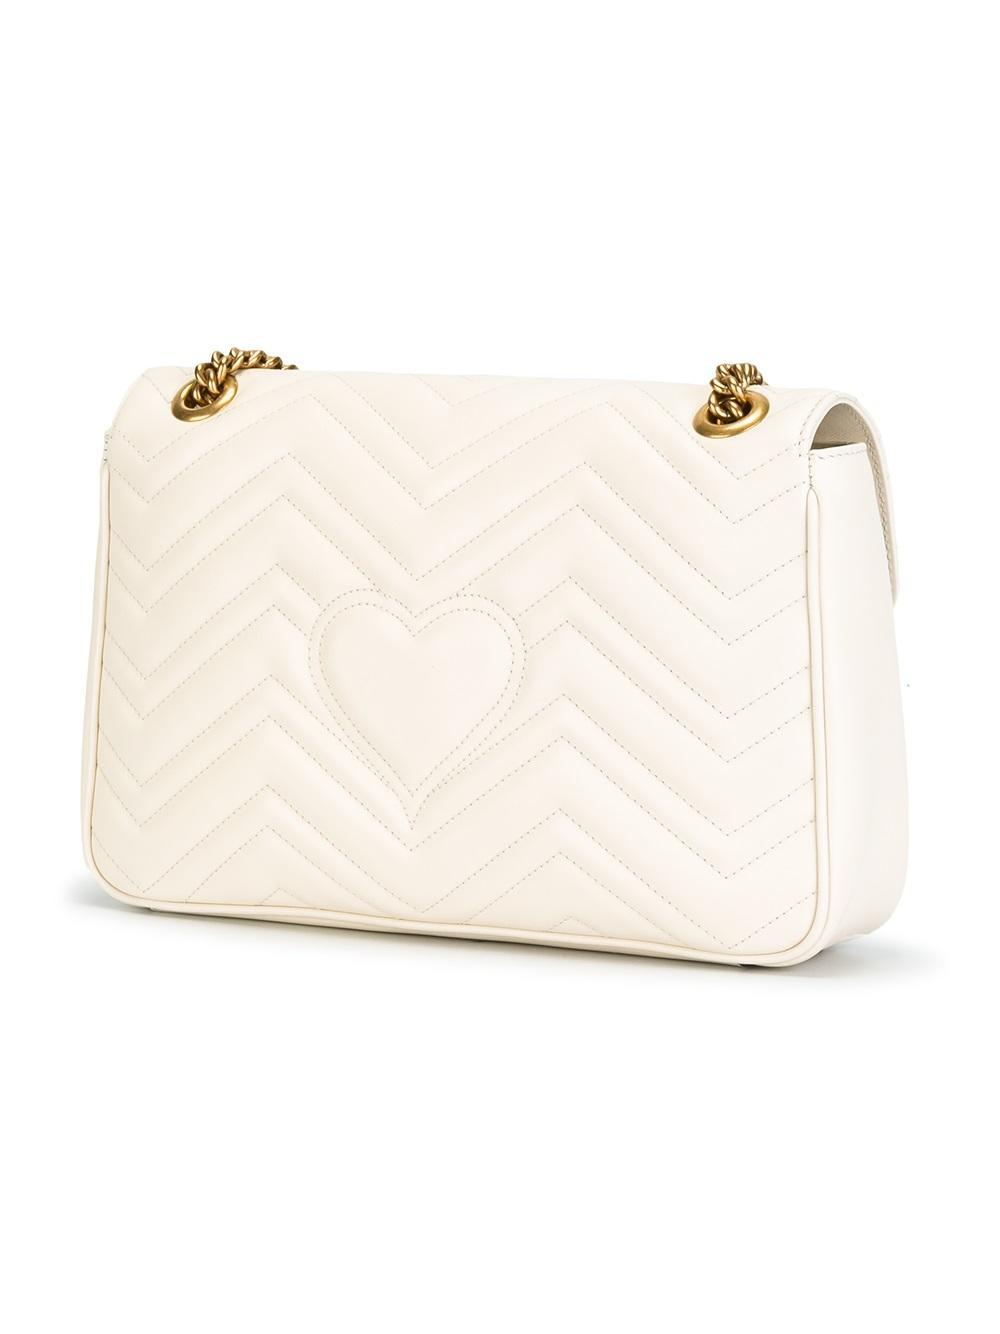 17160425c7f8f Gucci Gg Marmont Small Matelassé Shoulder Bag White